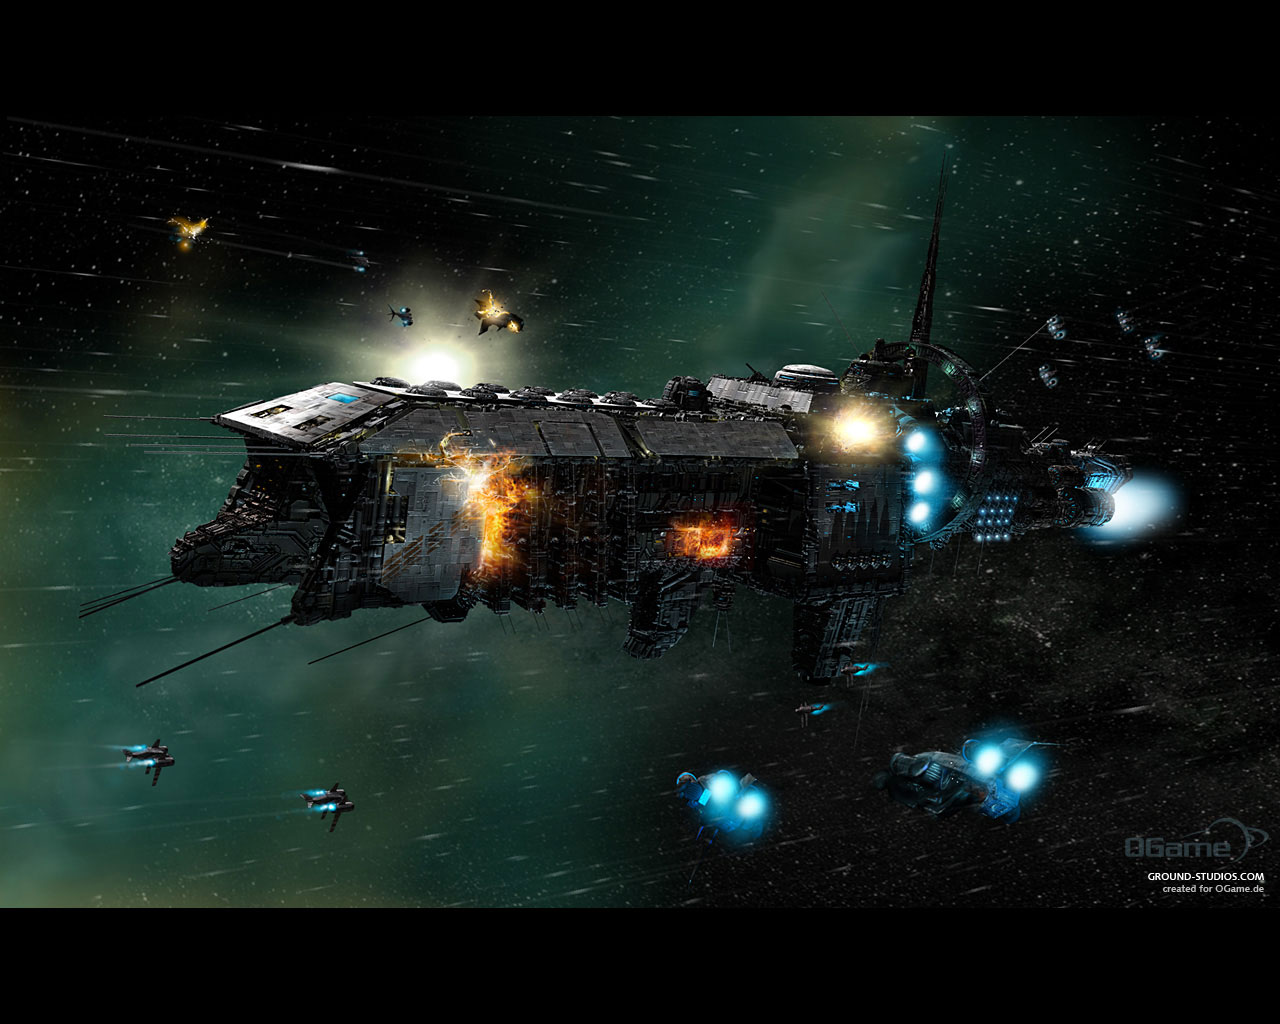 destroyer_this_is_the_second_design_ogam...578948.jpg